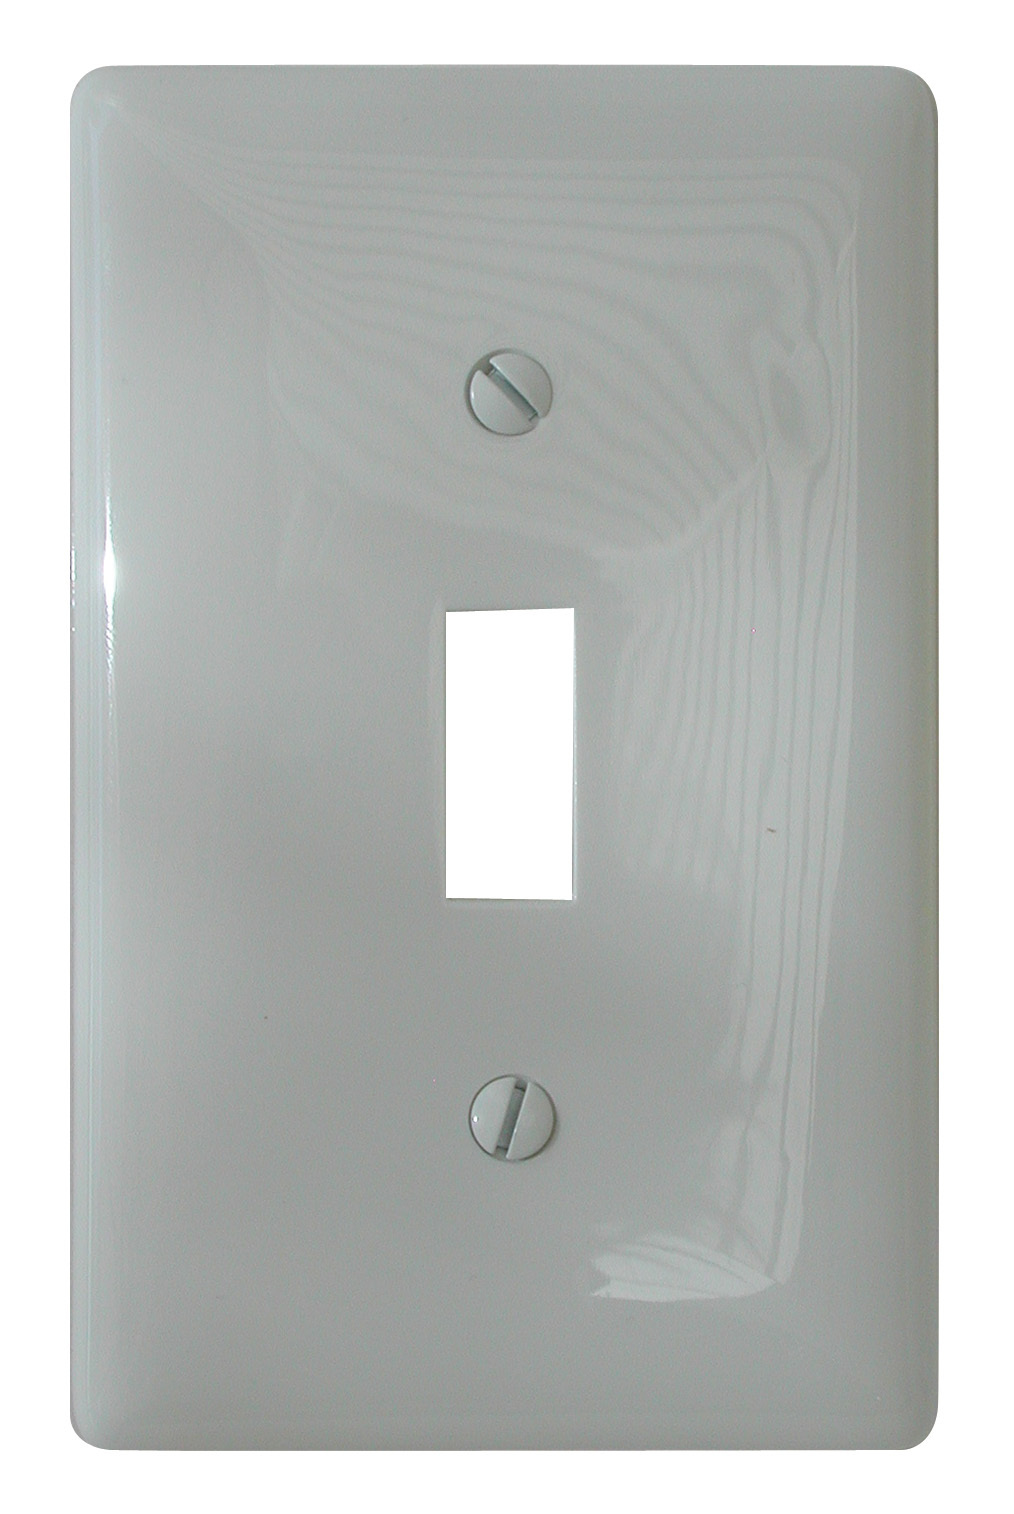 Toggle Switch Cover - White 4134W